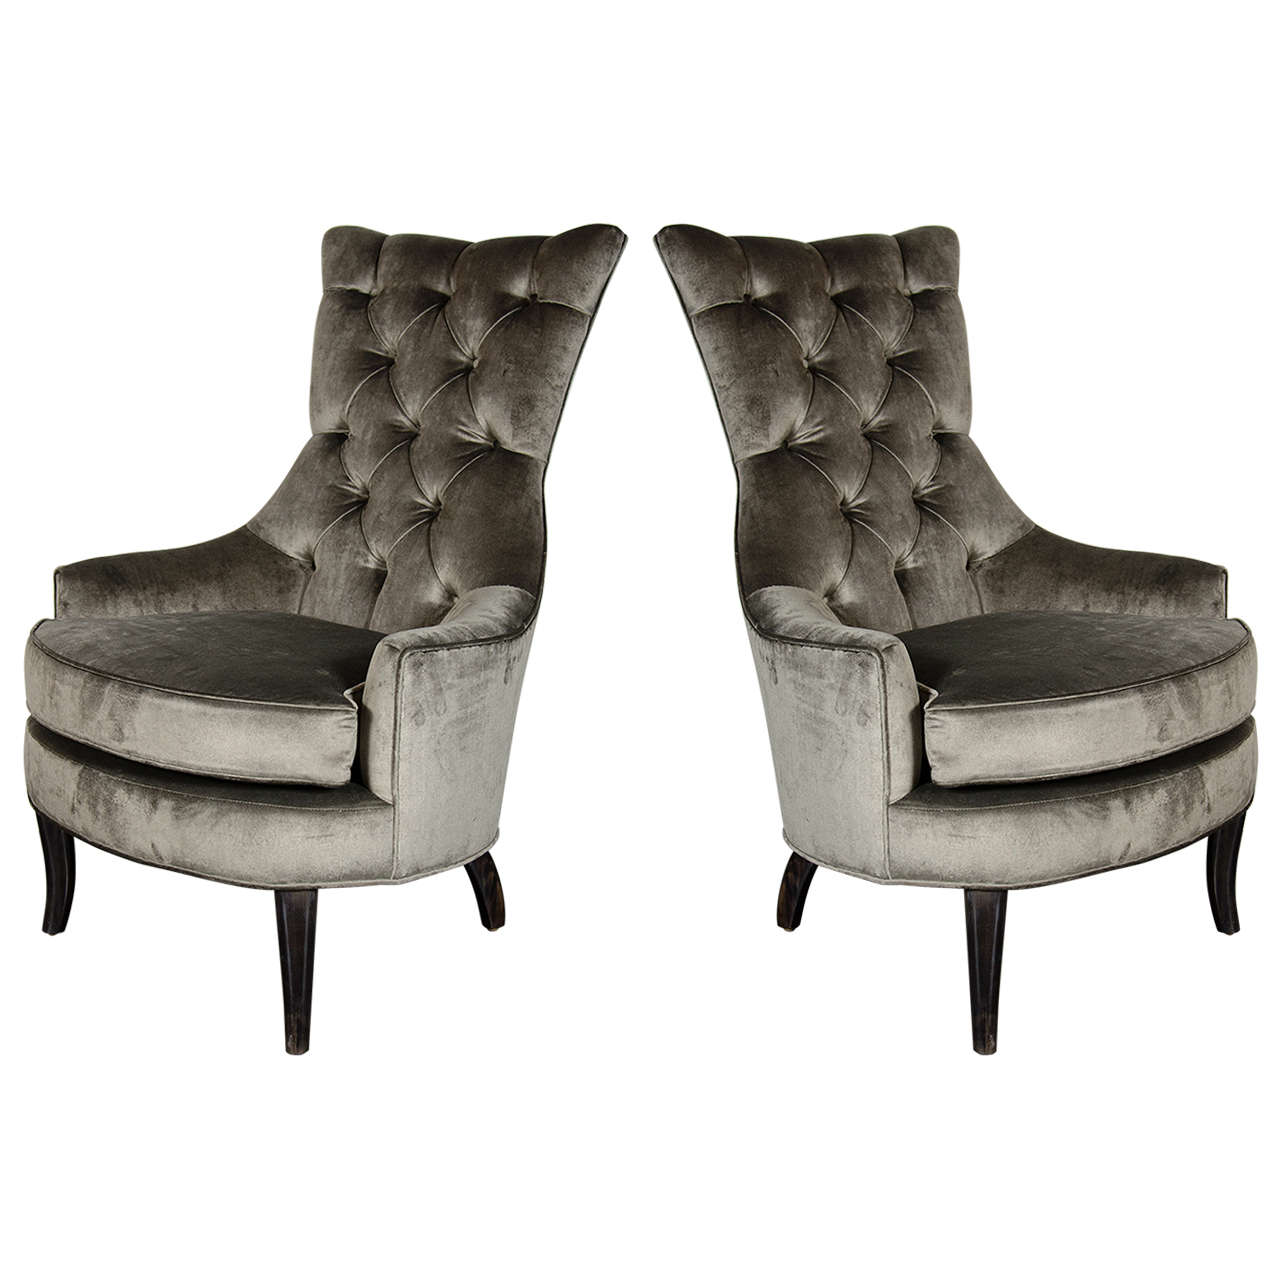 Tufted High Back Chair Pair Of Mid Century Modern Tufted High Back Chairs In Smoked Platinum Velvet